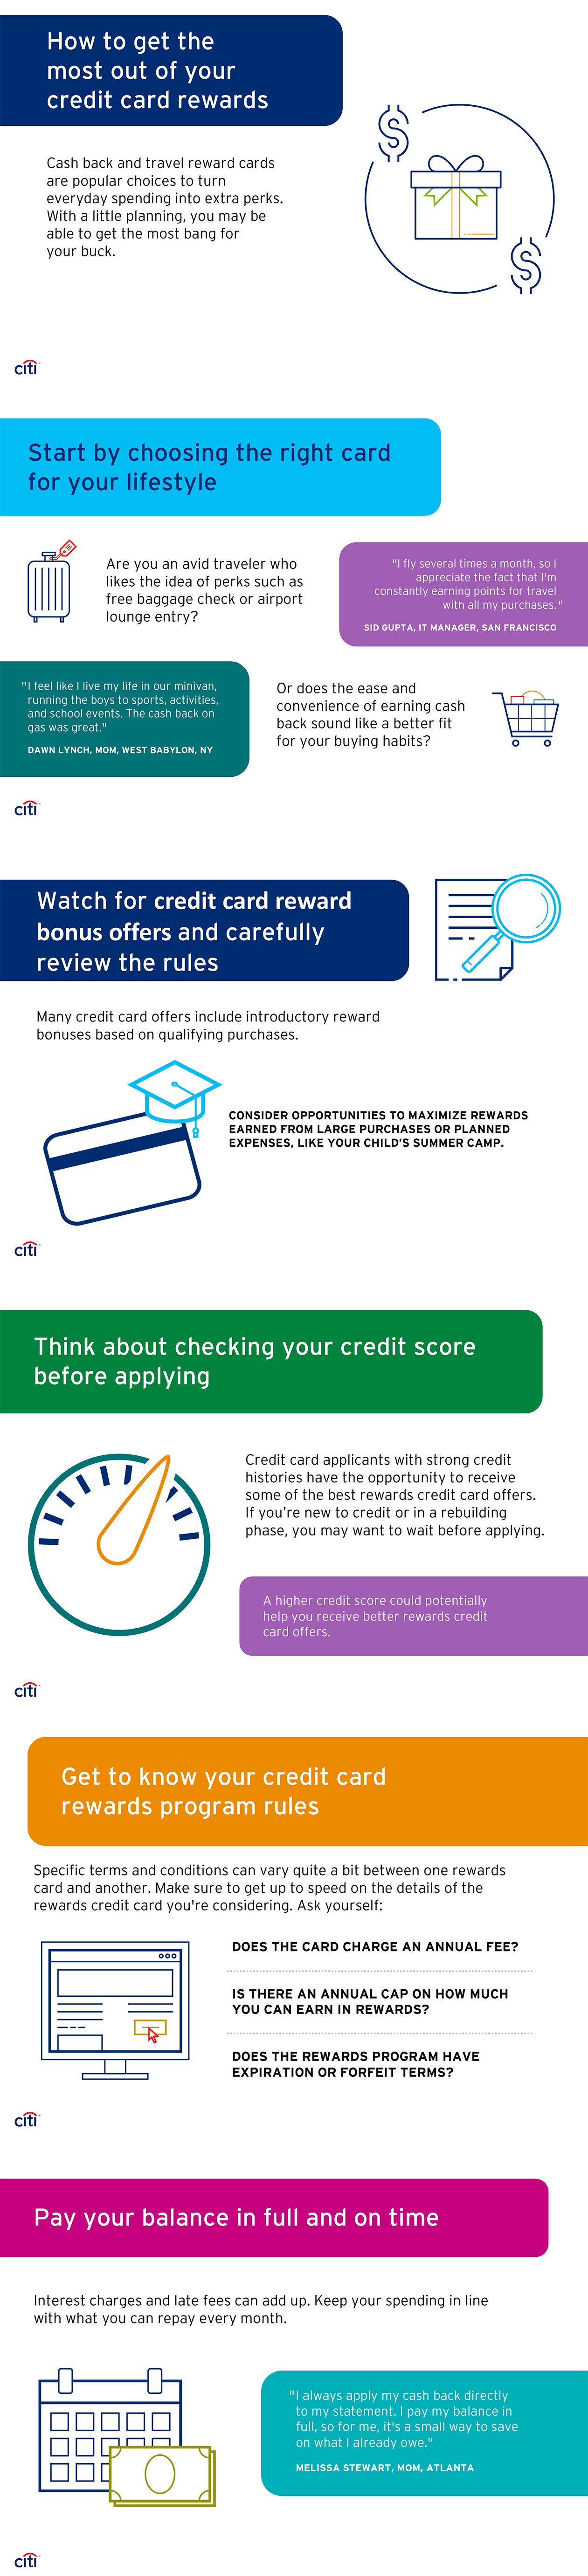 How to get the most out of your credit card rewards